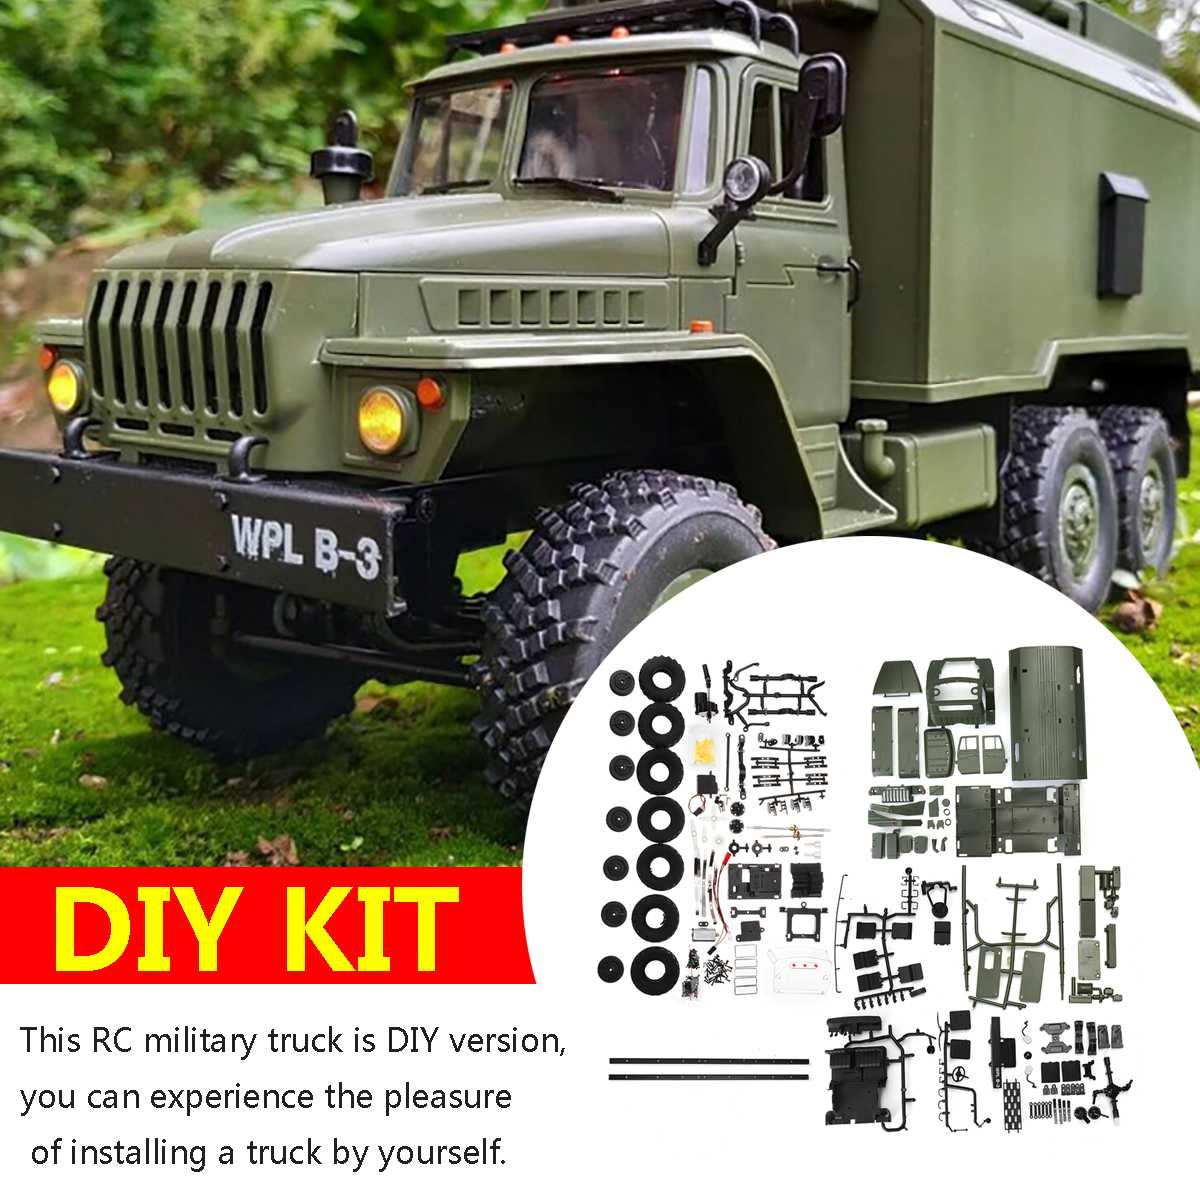 Christmas Toy Gift Remote Control WPL B36 DIY Kit 1/16 2.4G 6WD RC Crawler Military Truck Car Offroad Car toys Buggy Remote Army